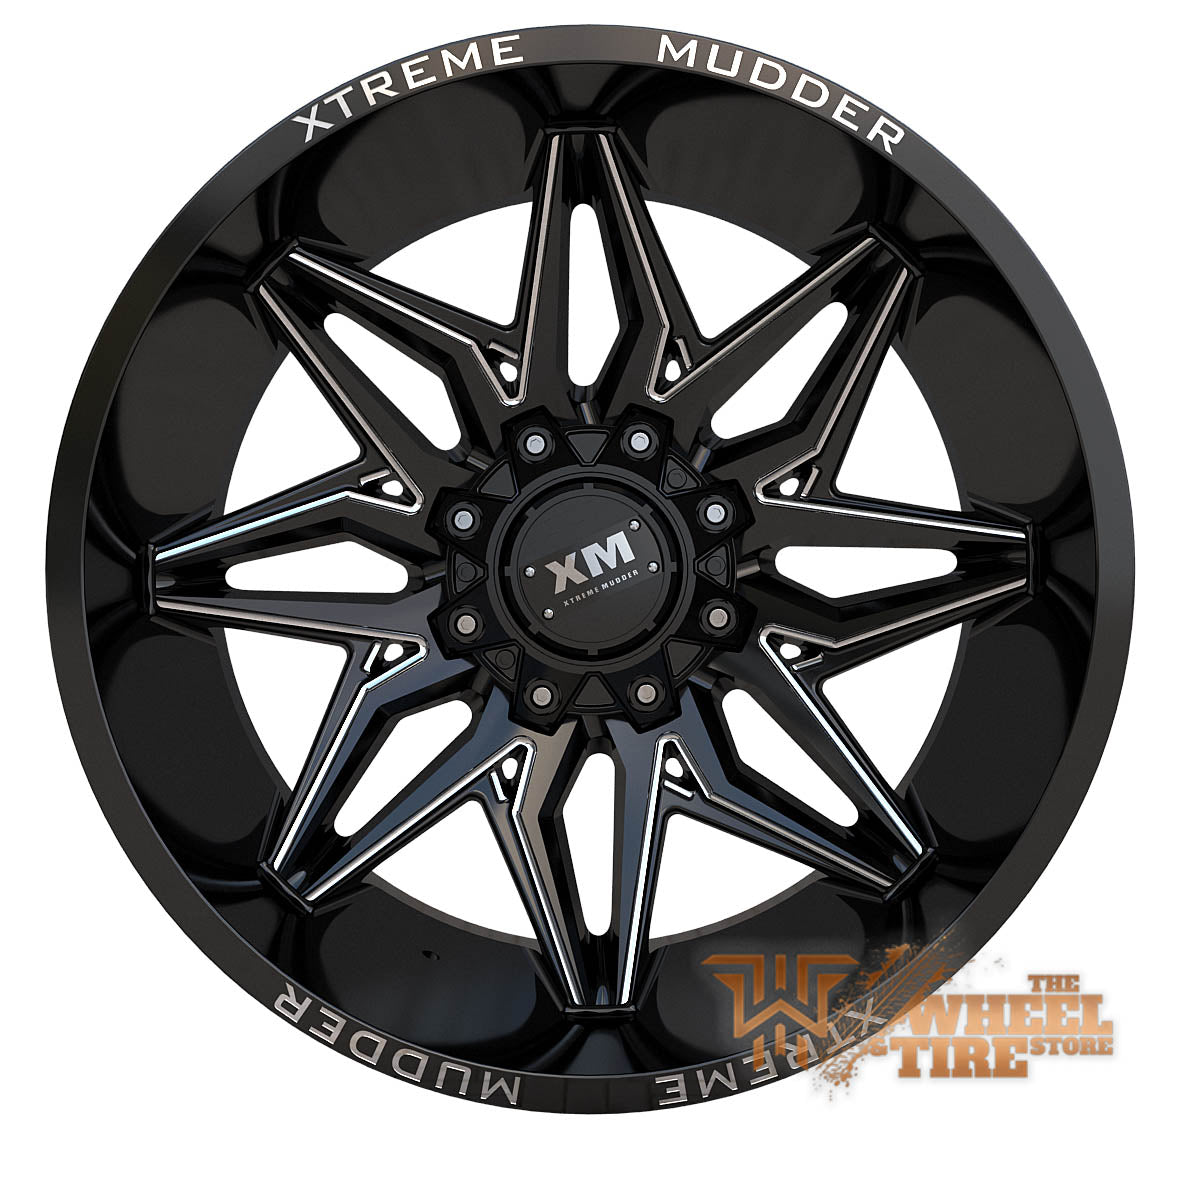 XTREME MUDDER XM-342 Wheel in Gloss Black Milled